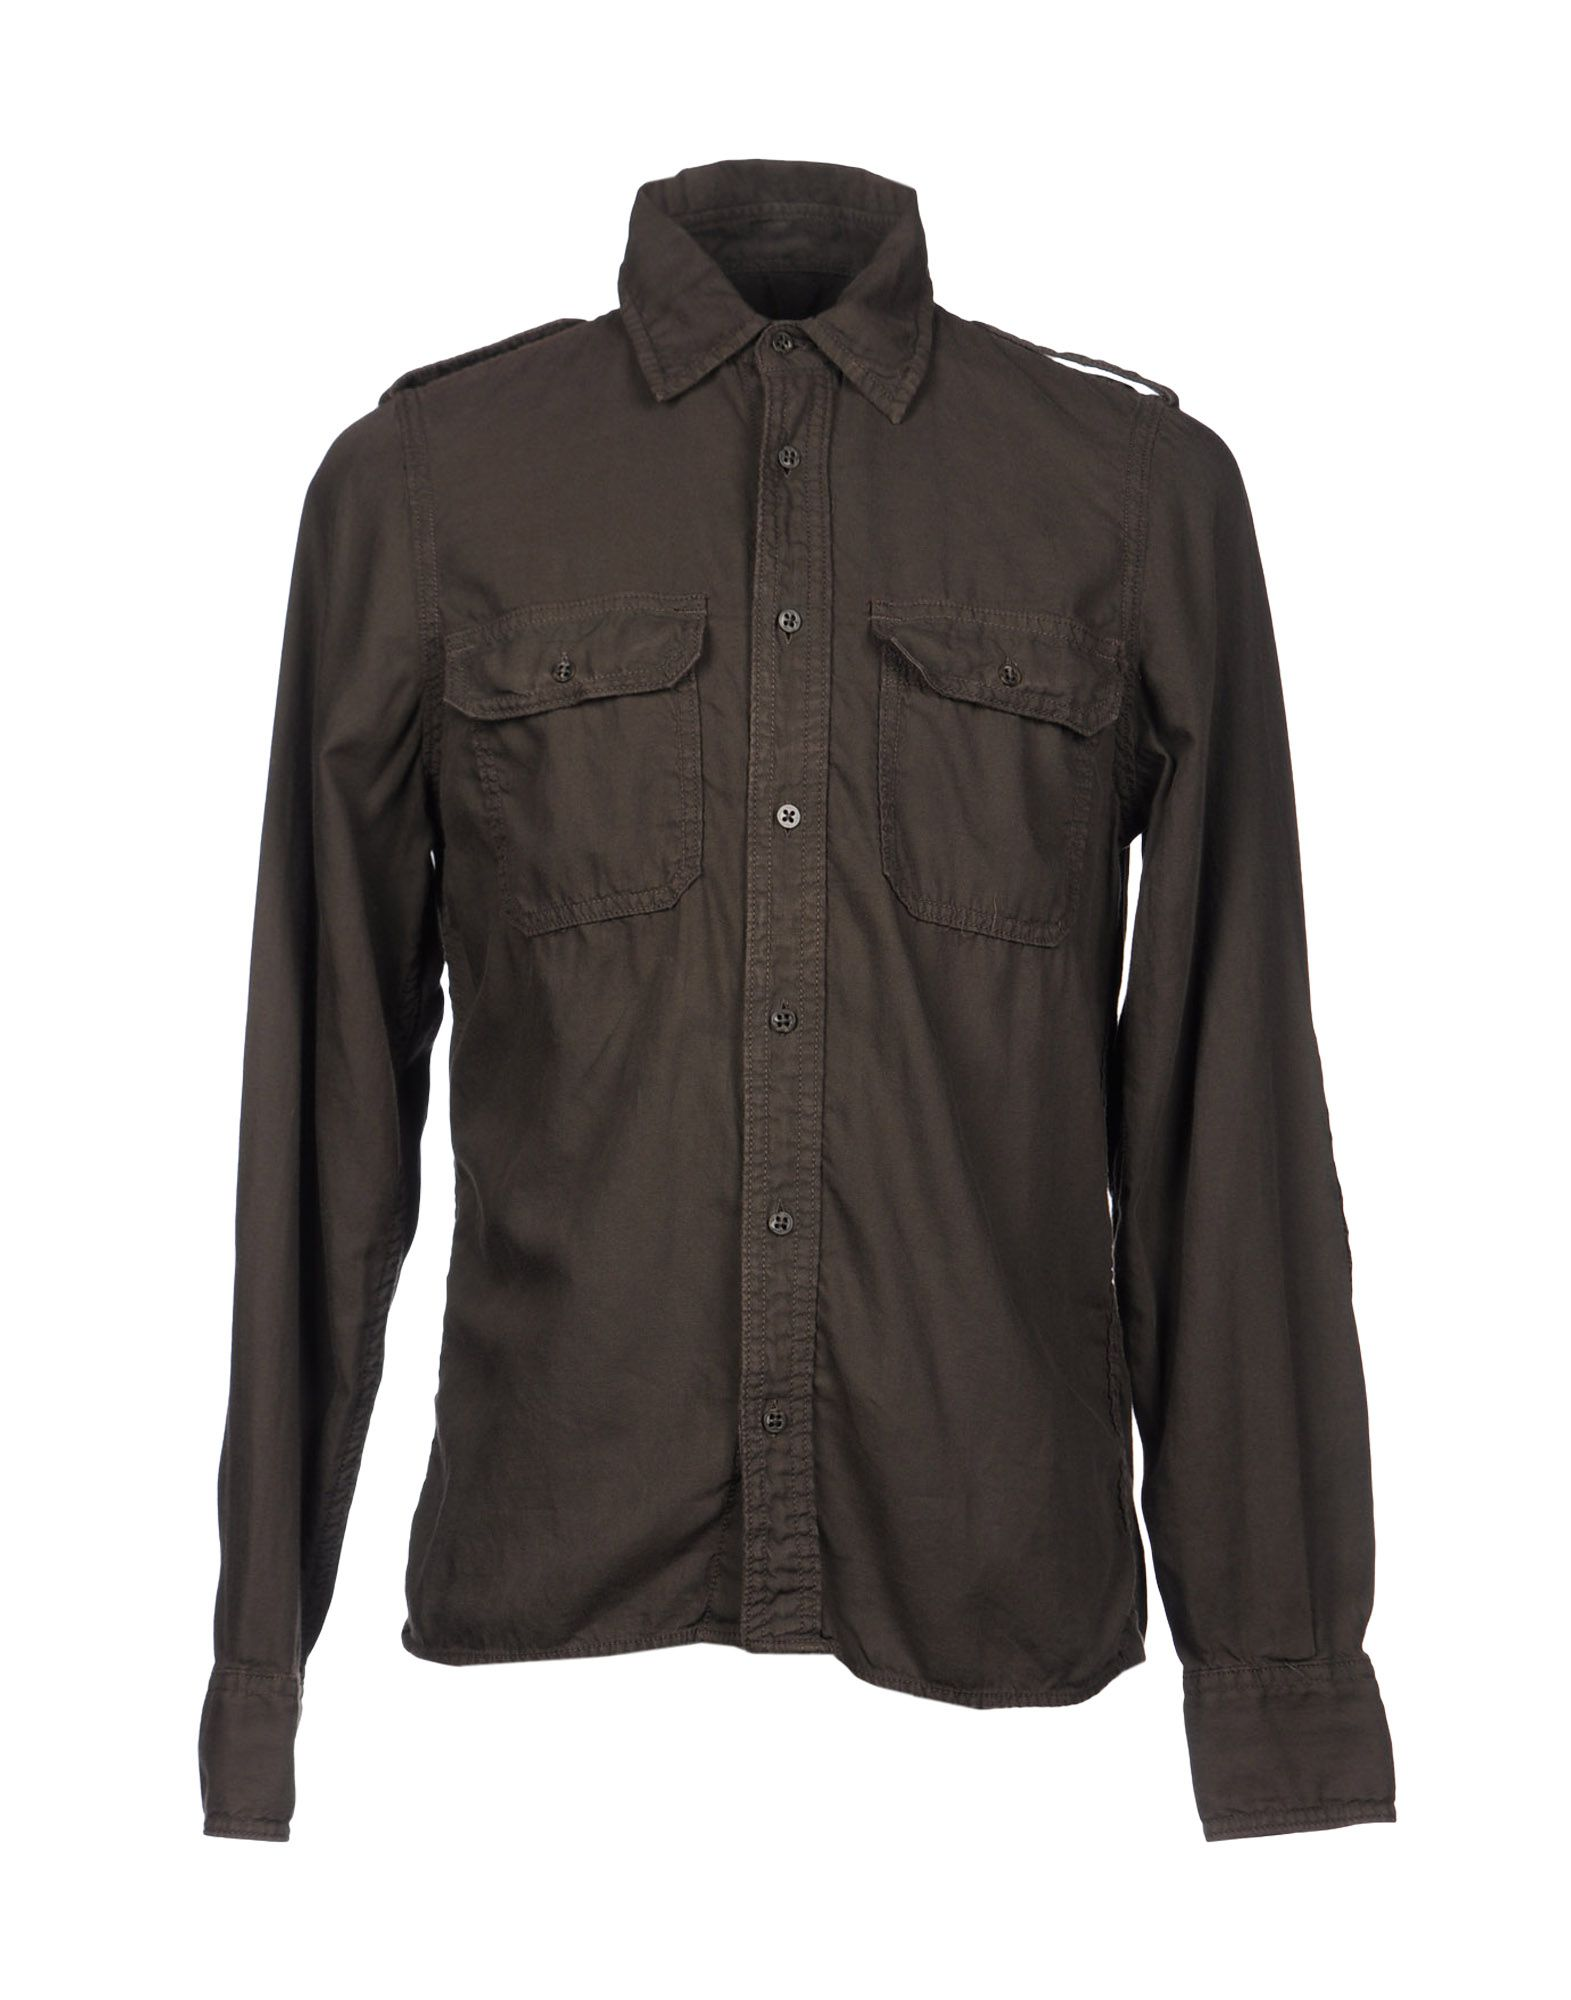 Robert friedman shirts in brown for men dark brown lyst for Black brown mens shirts